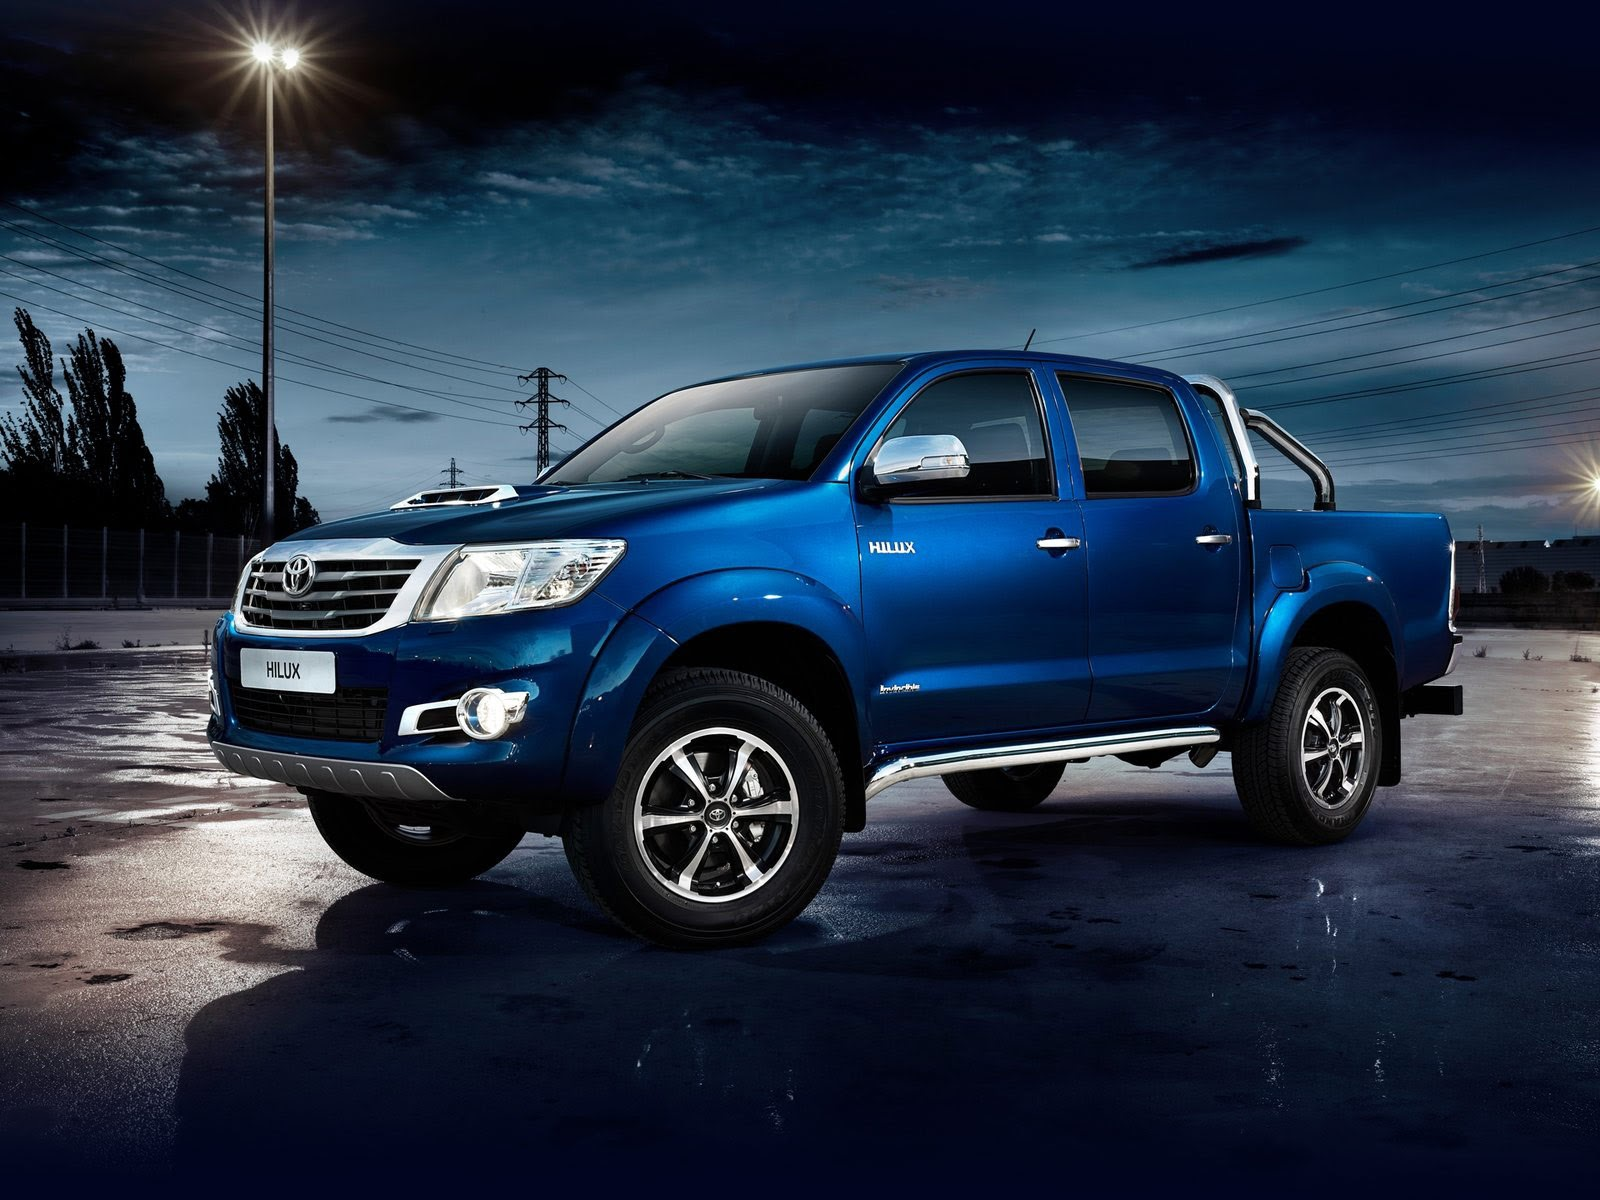 Japanese car photos - 2014 Toyota Hilux Invincible insurance